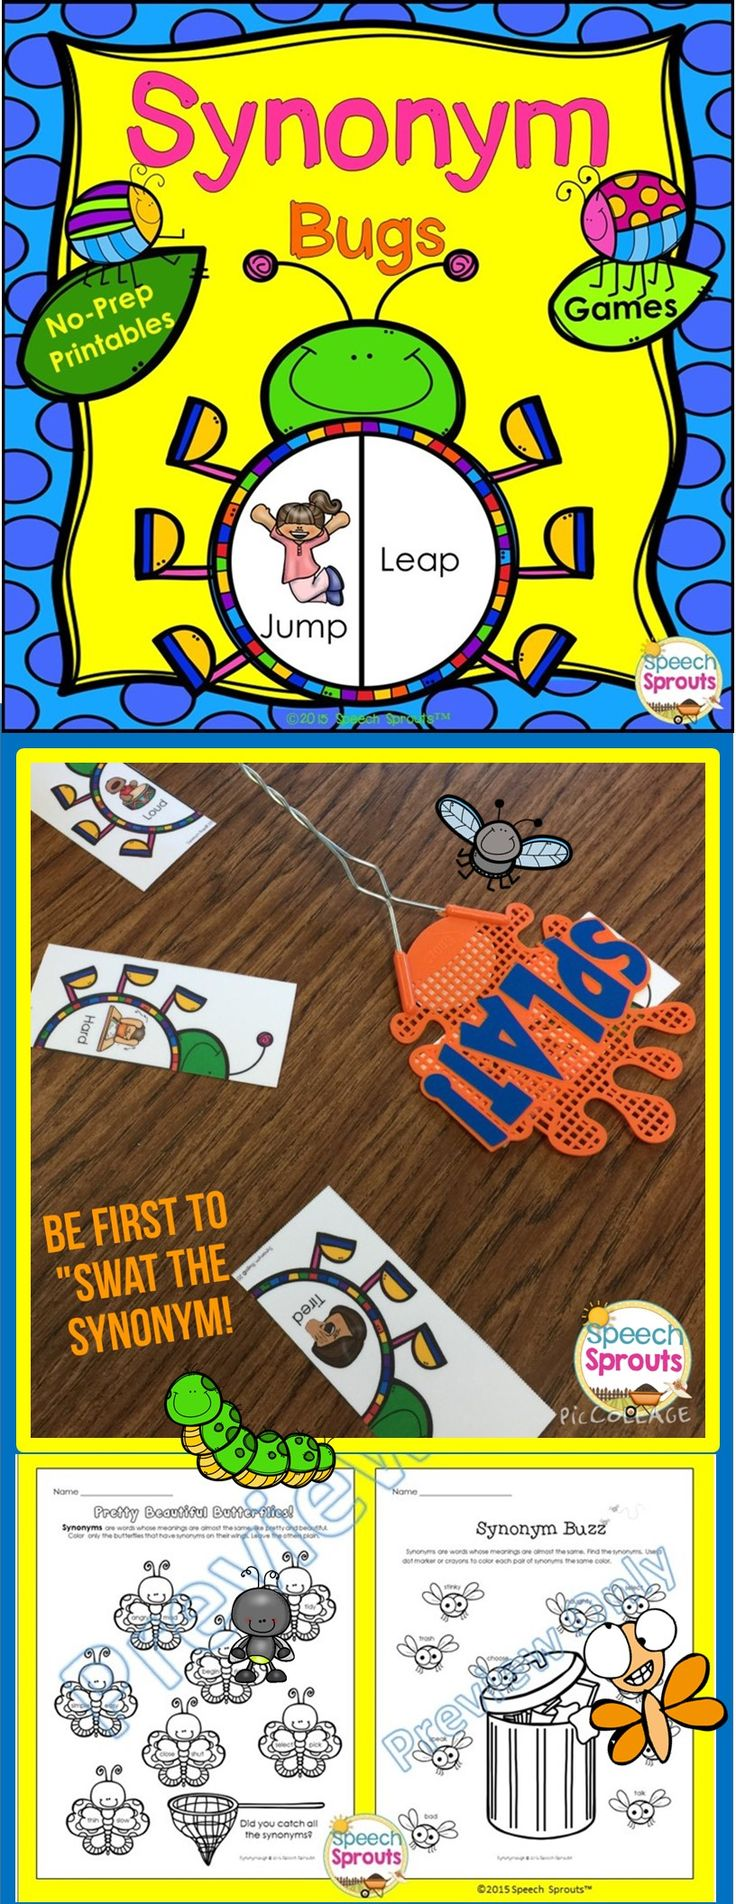 Worksheet Scramble Synonym 1000 images about synonyms on pinterest anchor charts synonym bugs tons of buggy practice with 15 no prep interactive printables